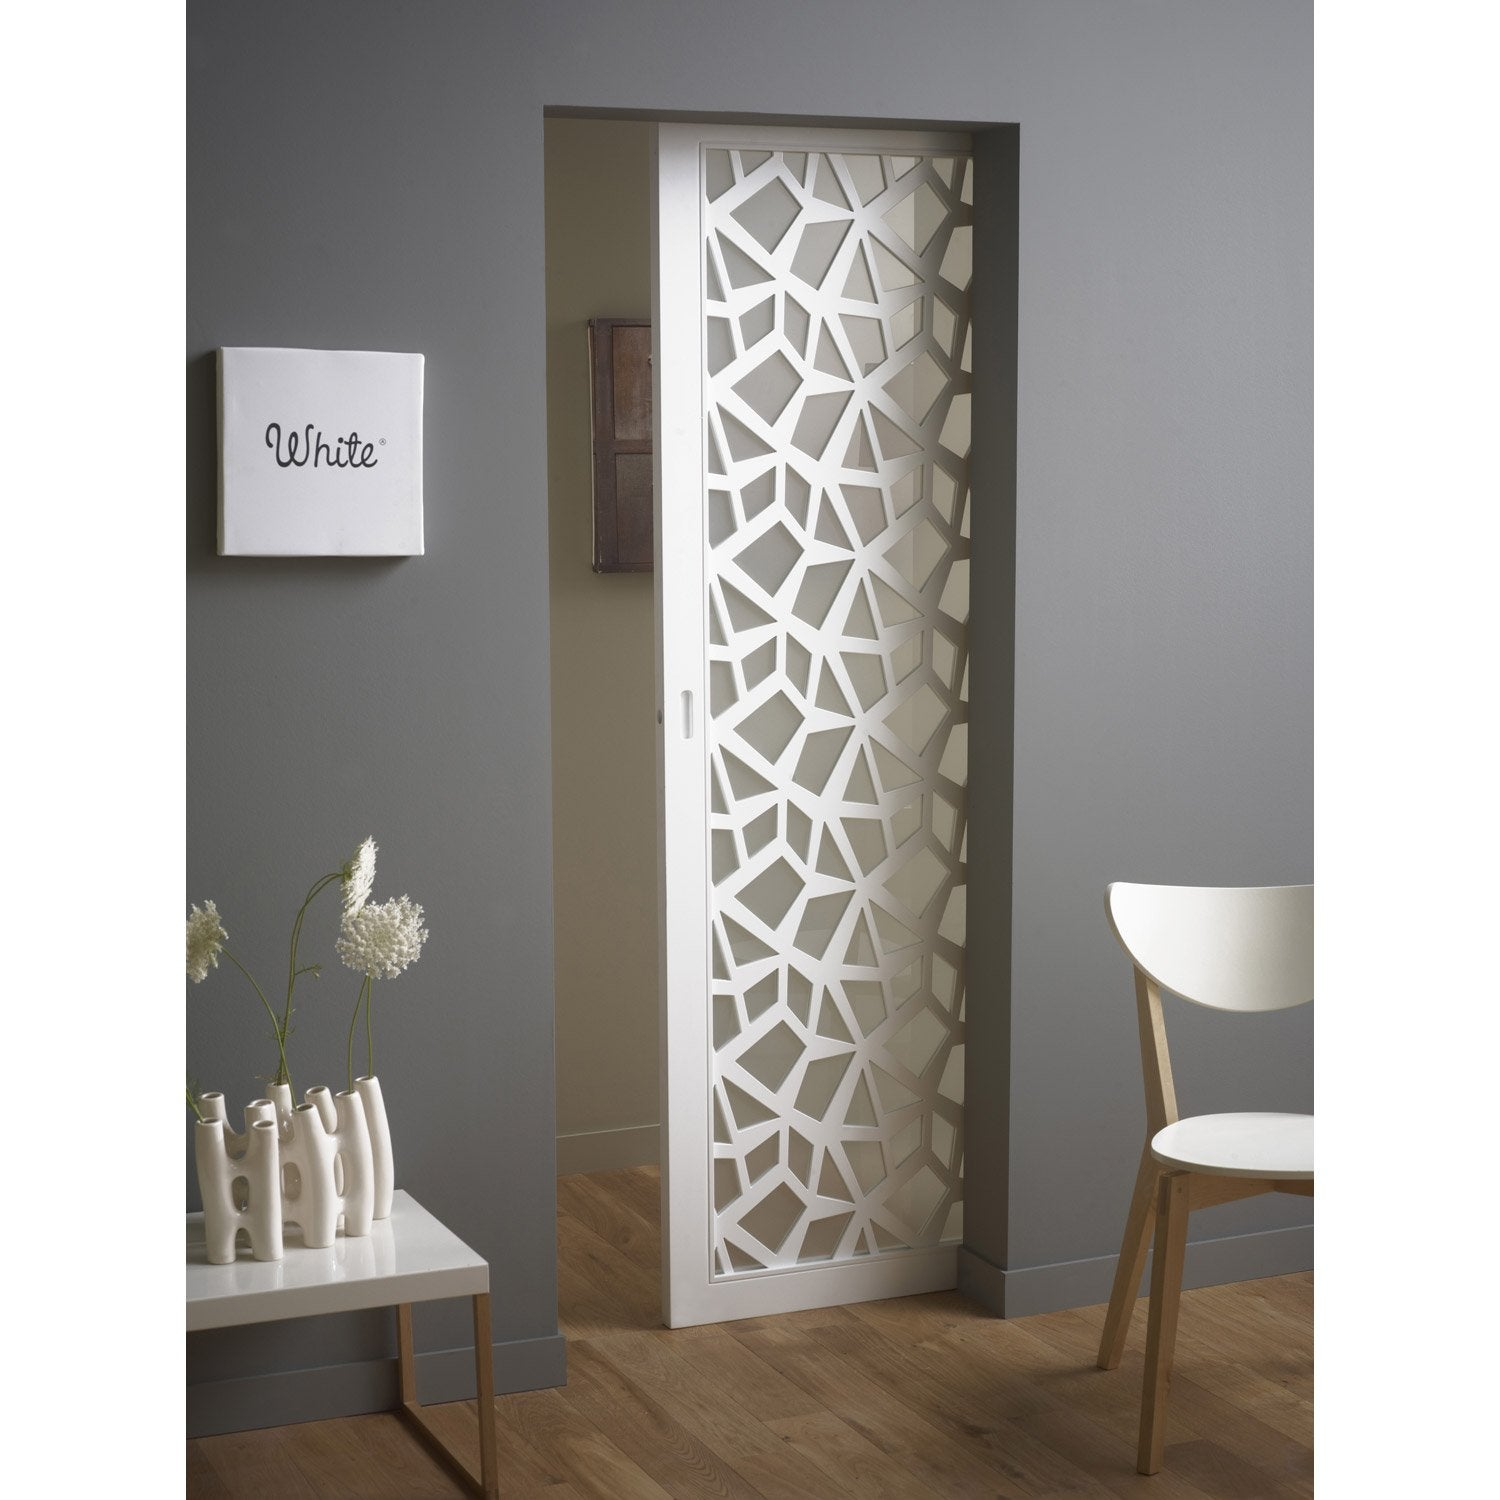 Ensemble porte coulissante crash verre et mdf laqu for Idee deco porte interieure